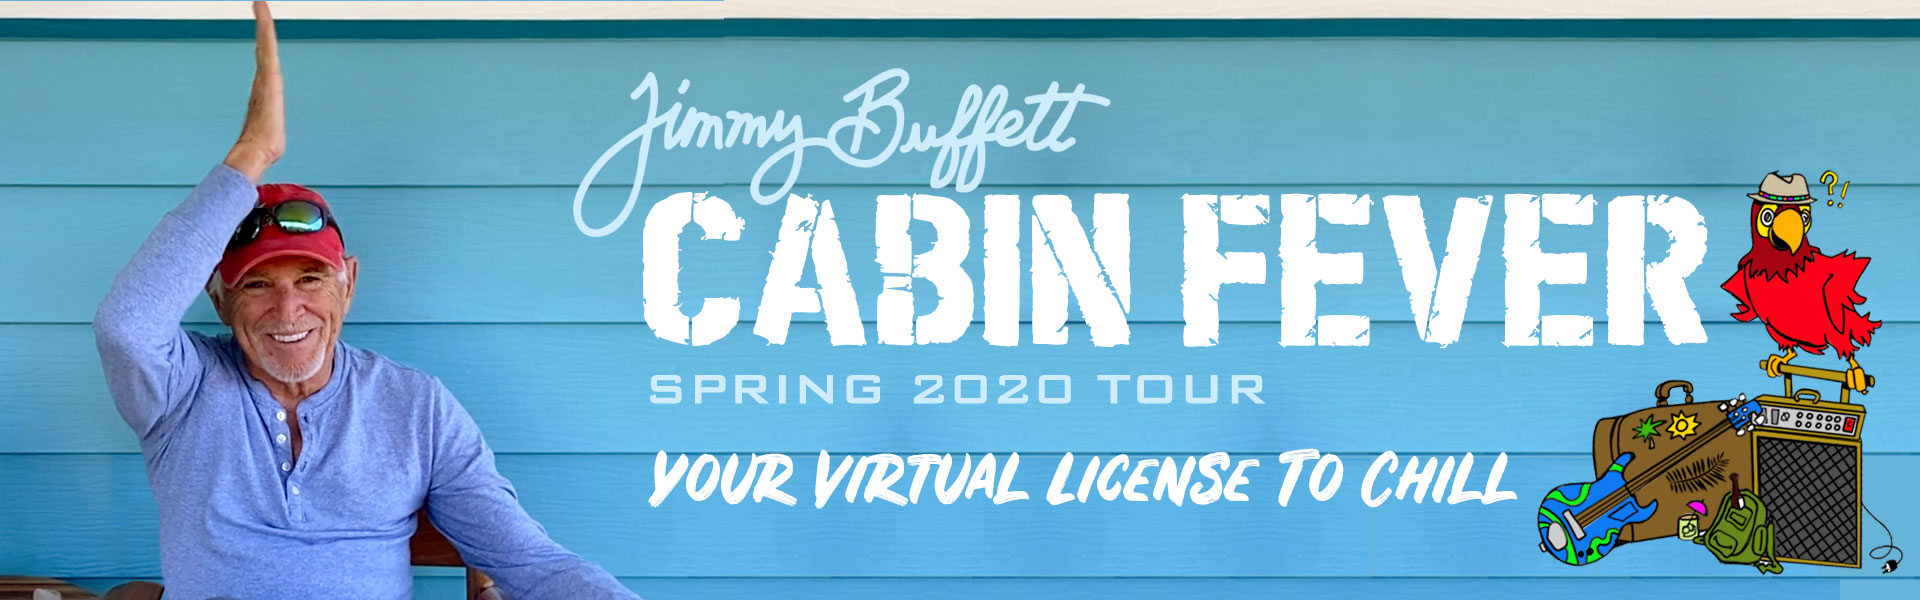 cabin fever spring 2020 virtual tour